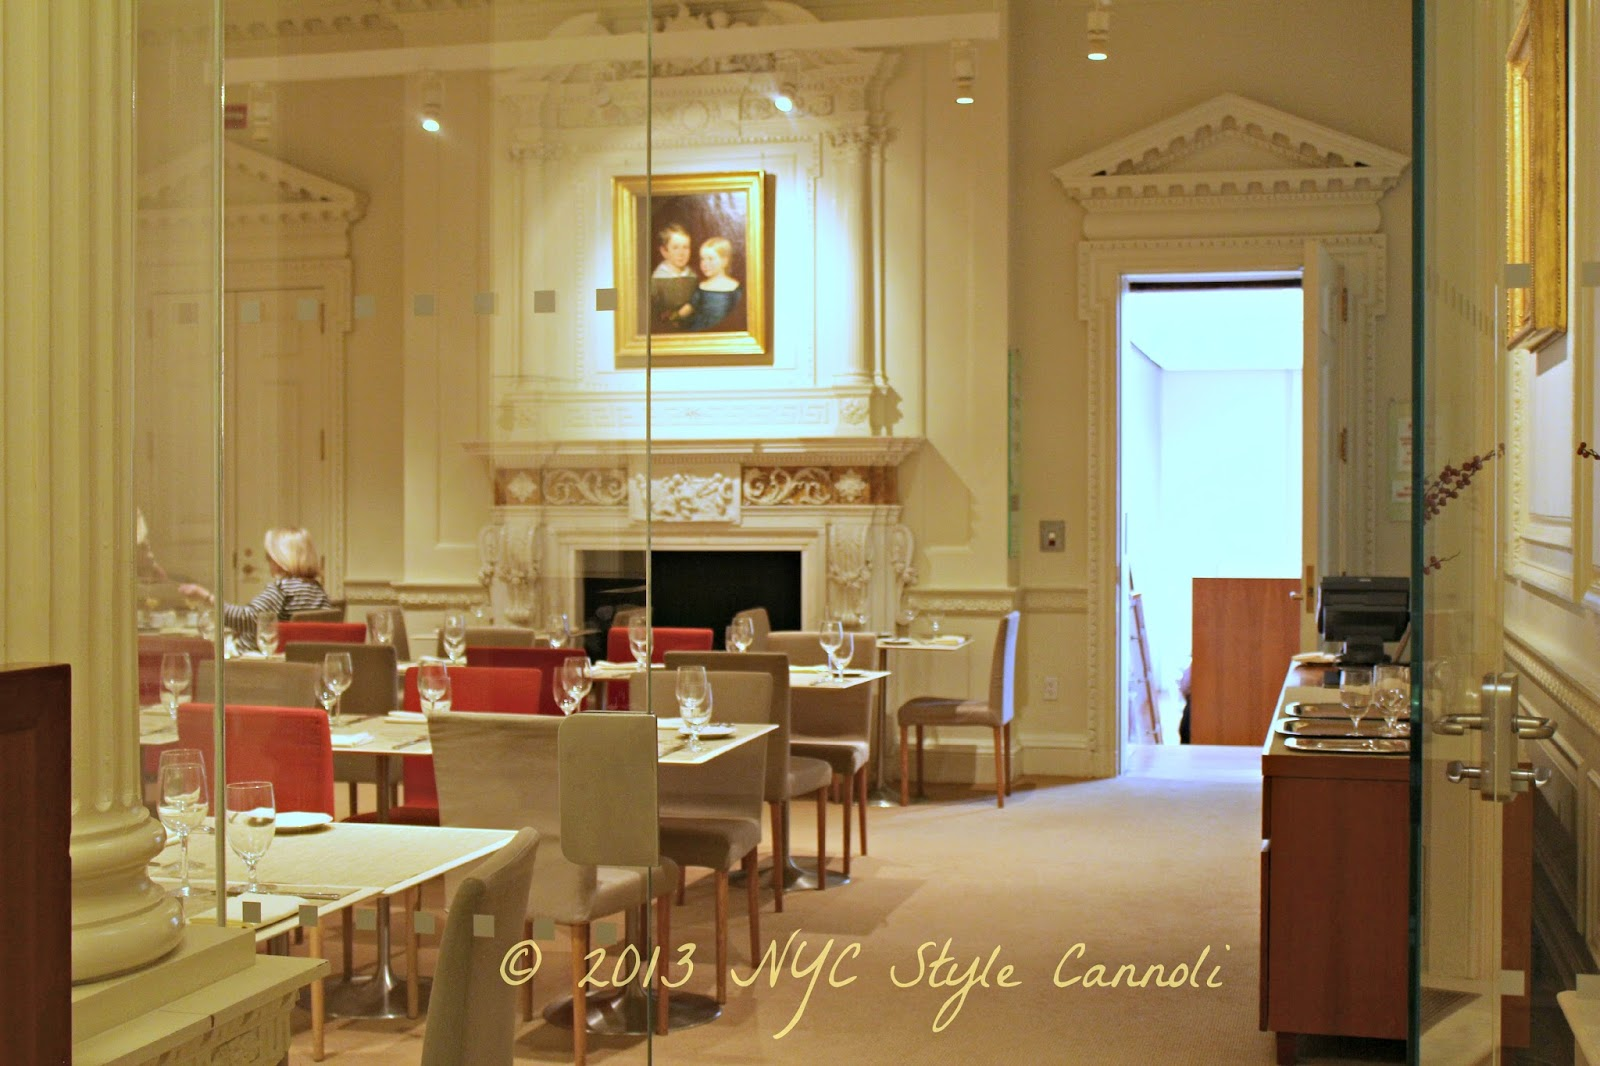 Incroyable The Morgan Dining Room, Where You Can Savor A Fabulous Meal In The Original  Morgan Family Dining Room. A Wonderful Experience Can Be Enjoyed By All.